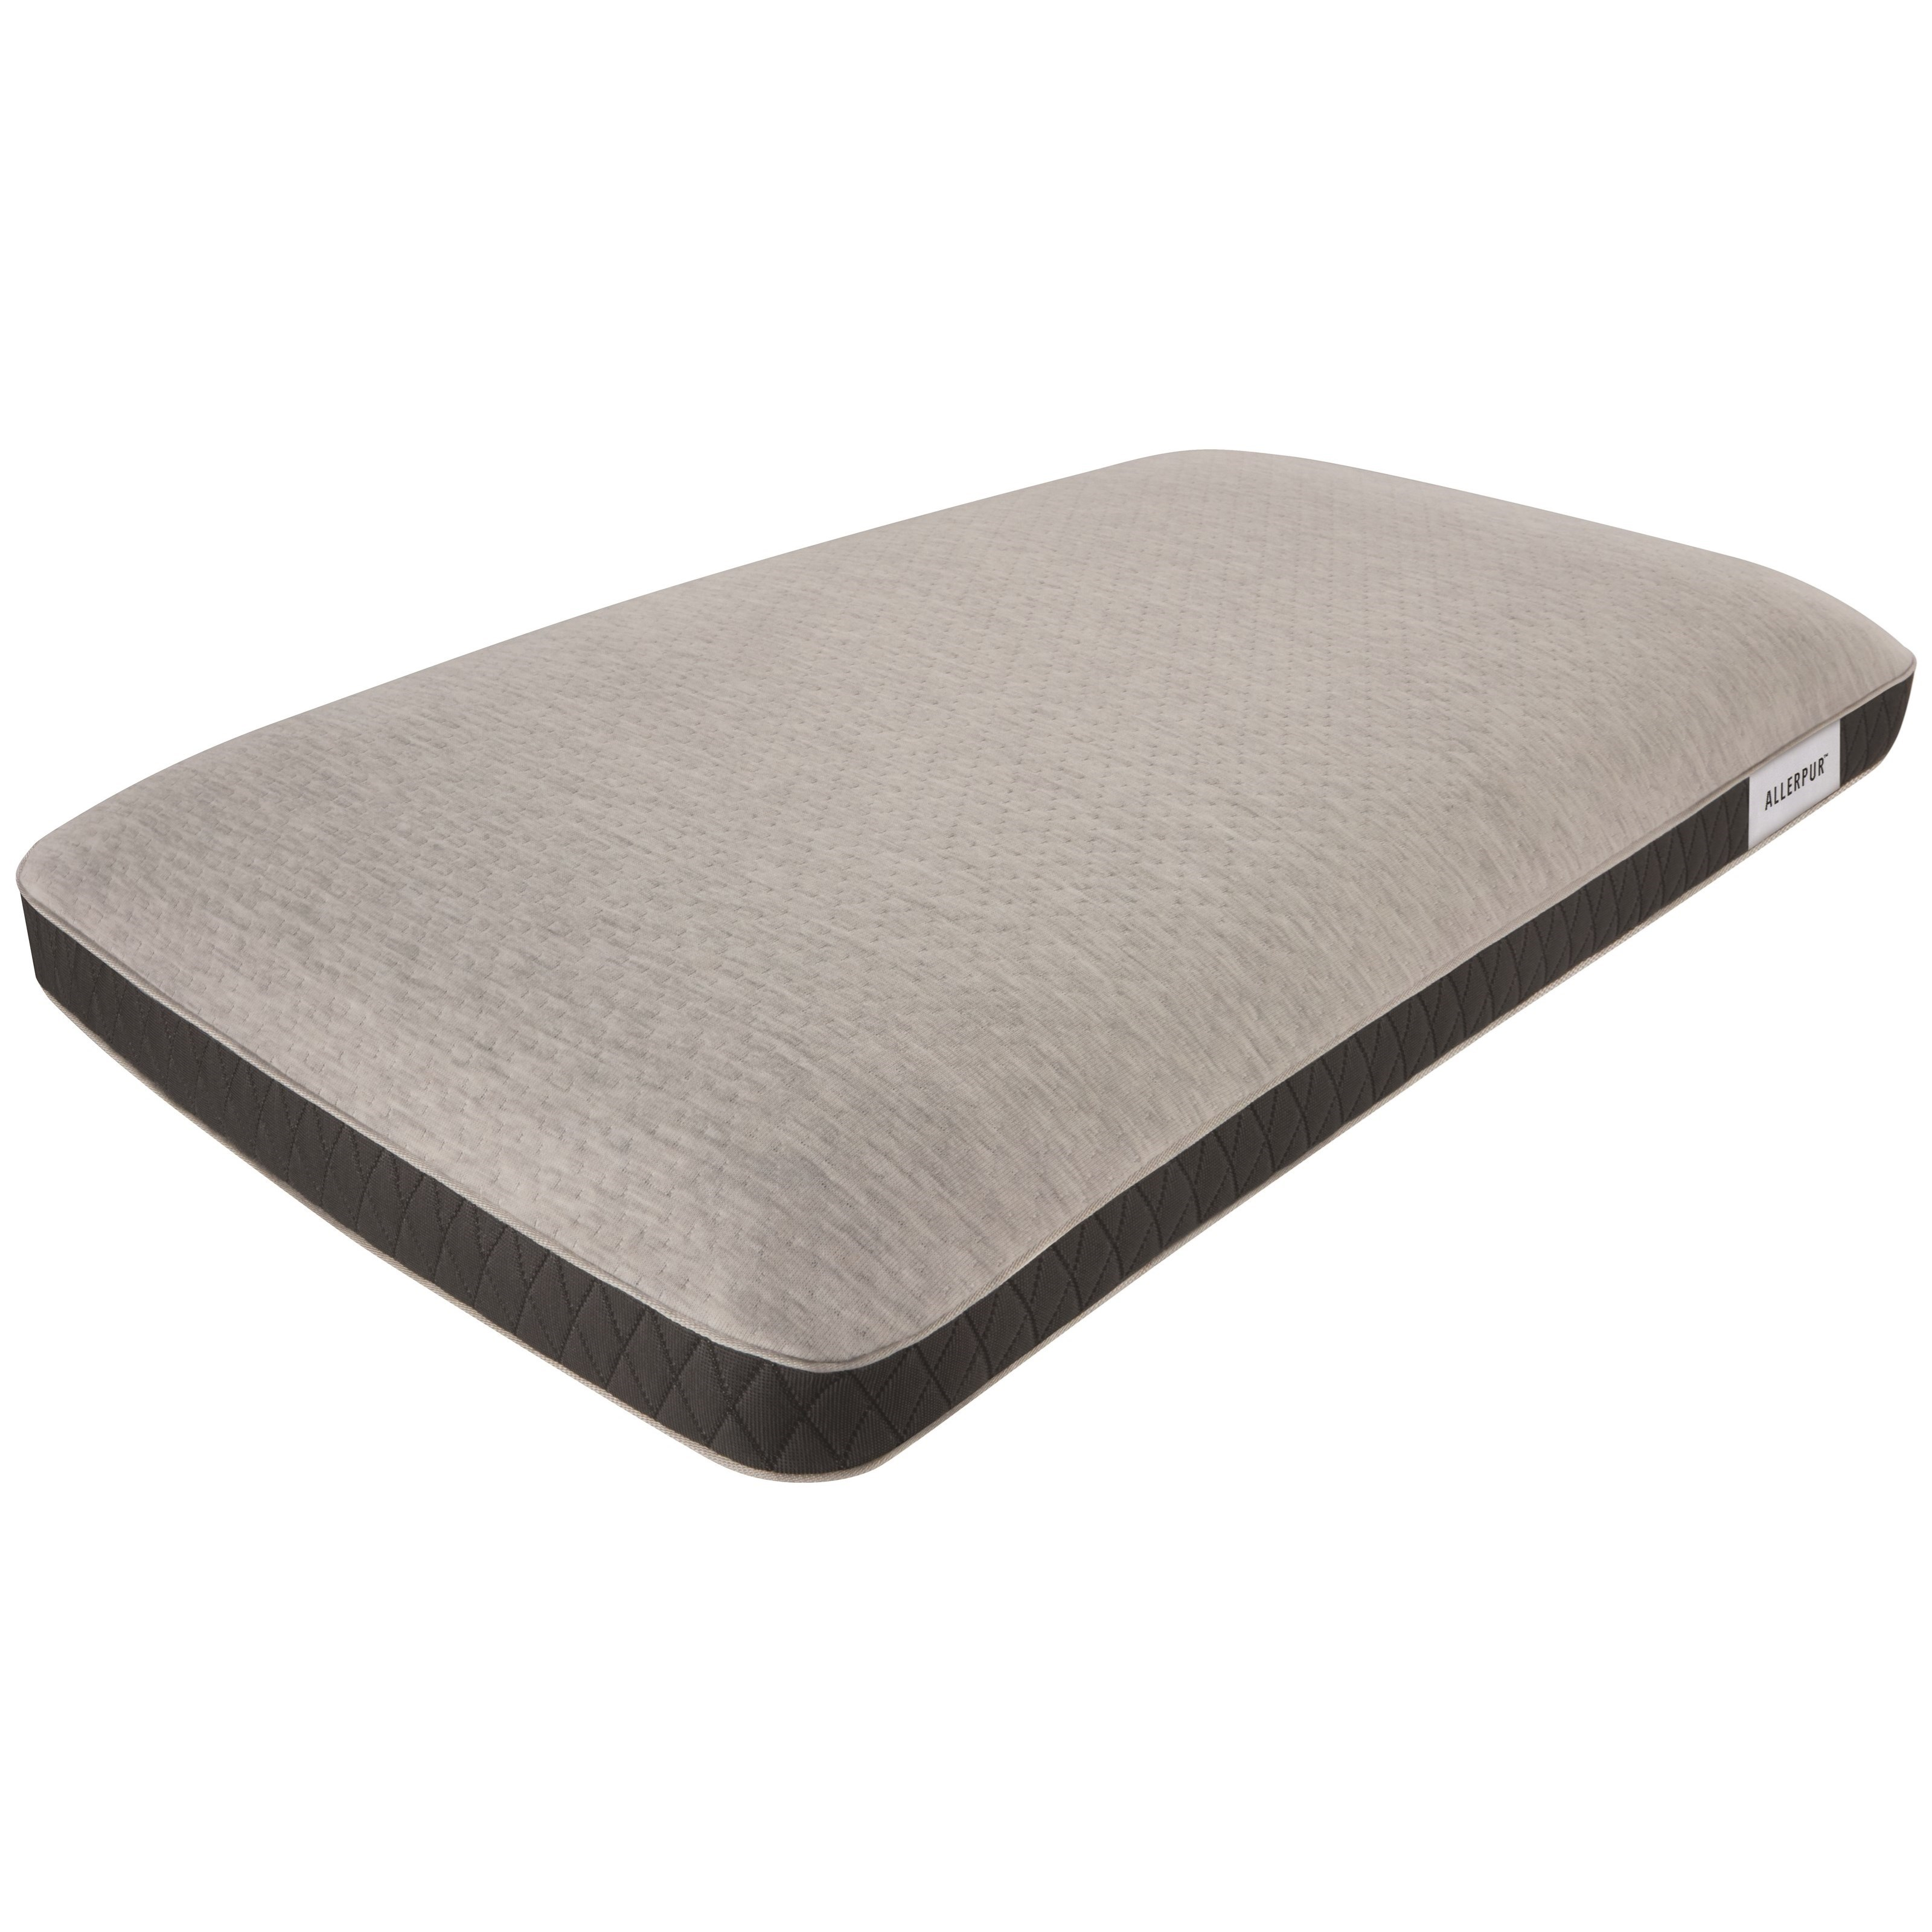 """Absolute Luxury Pillow 5"""" Absolute Luxury Memory Foam Pillow by Beautyrest at Becker Furniture"""